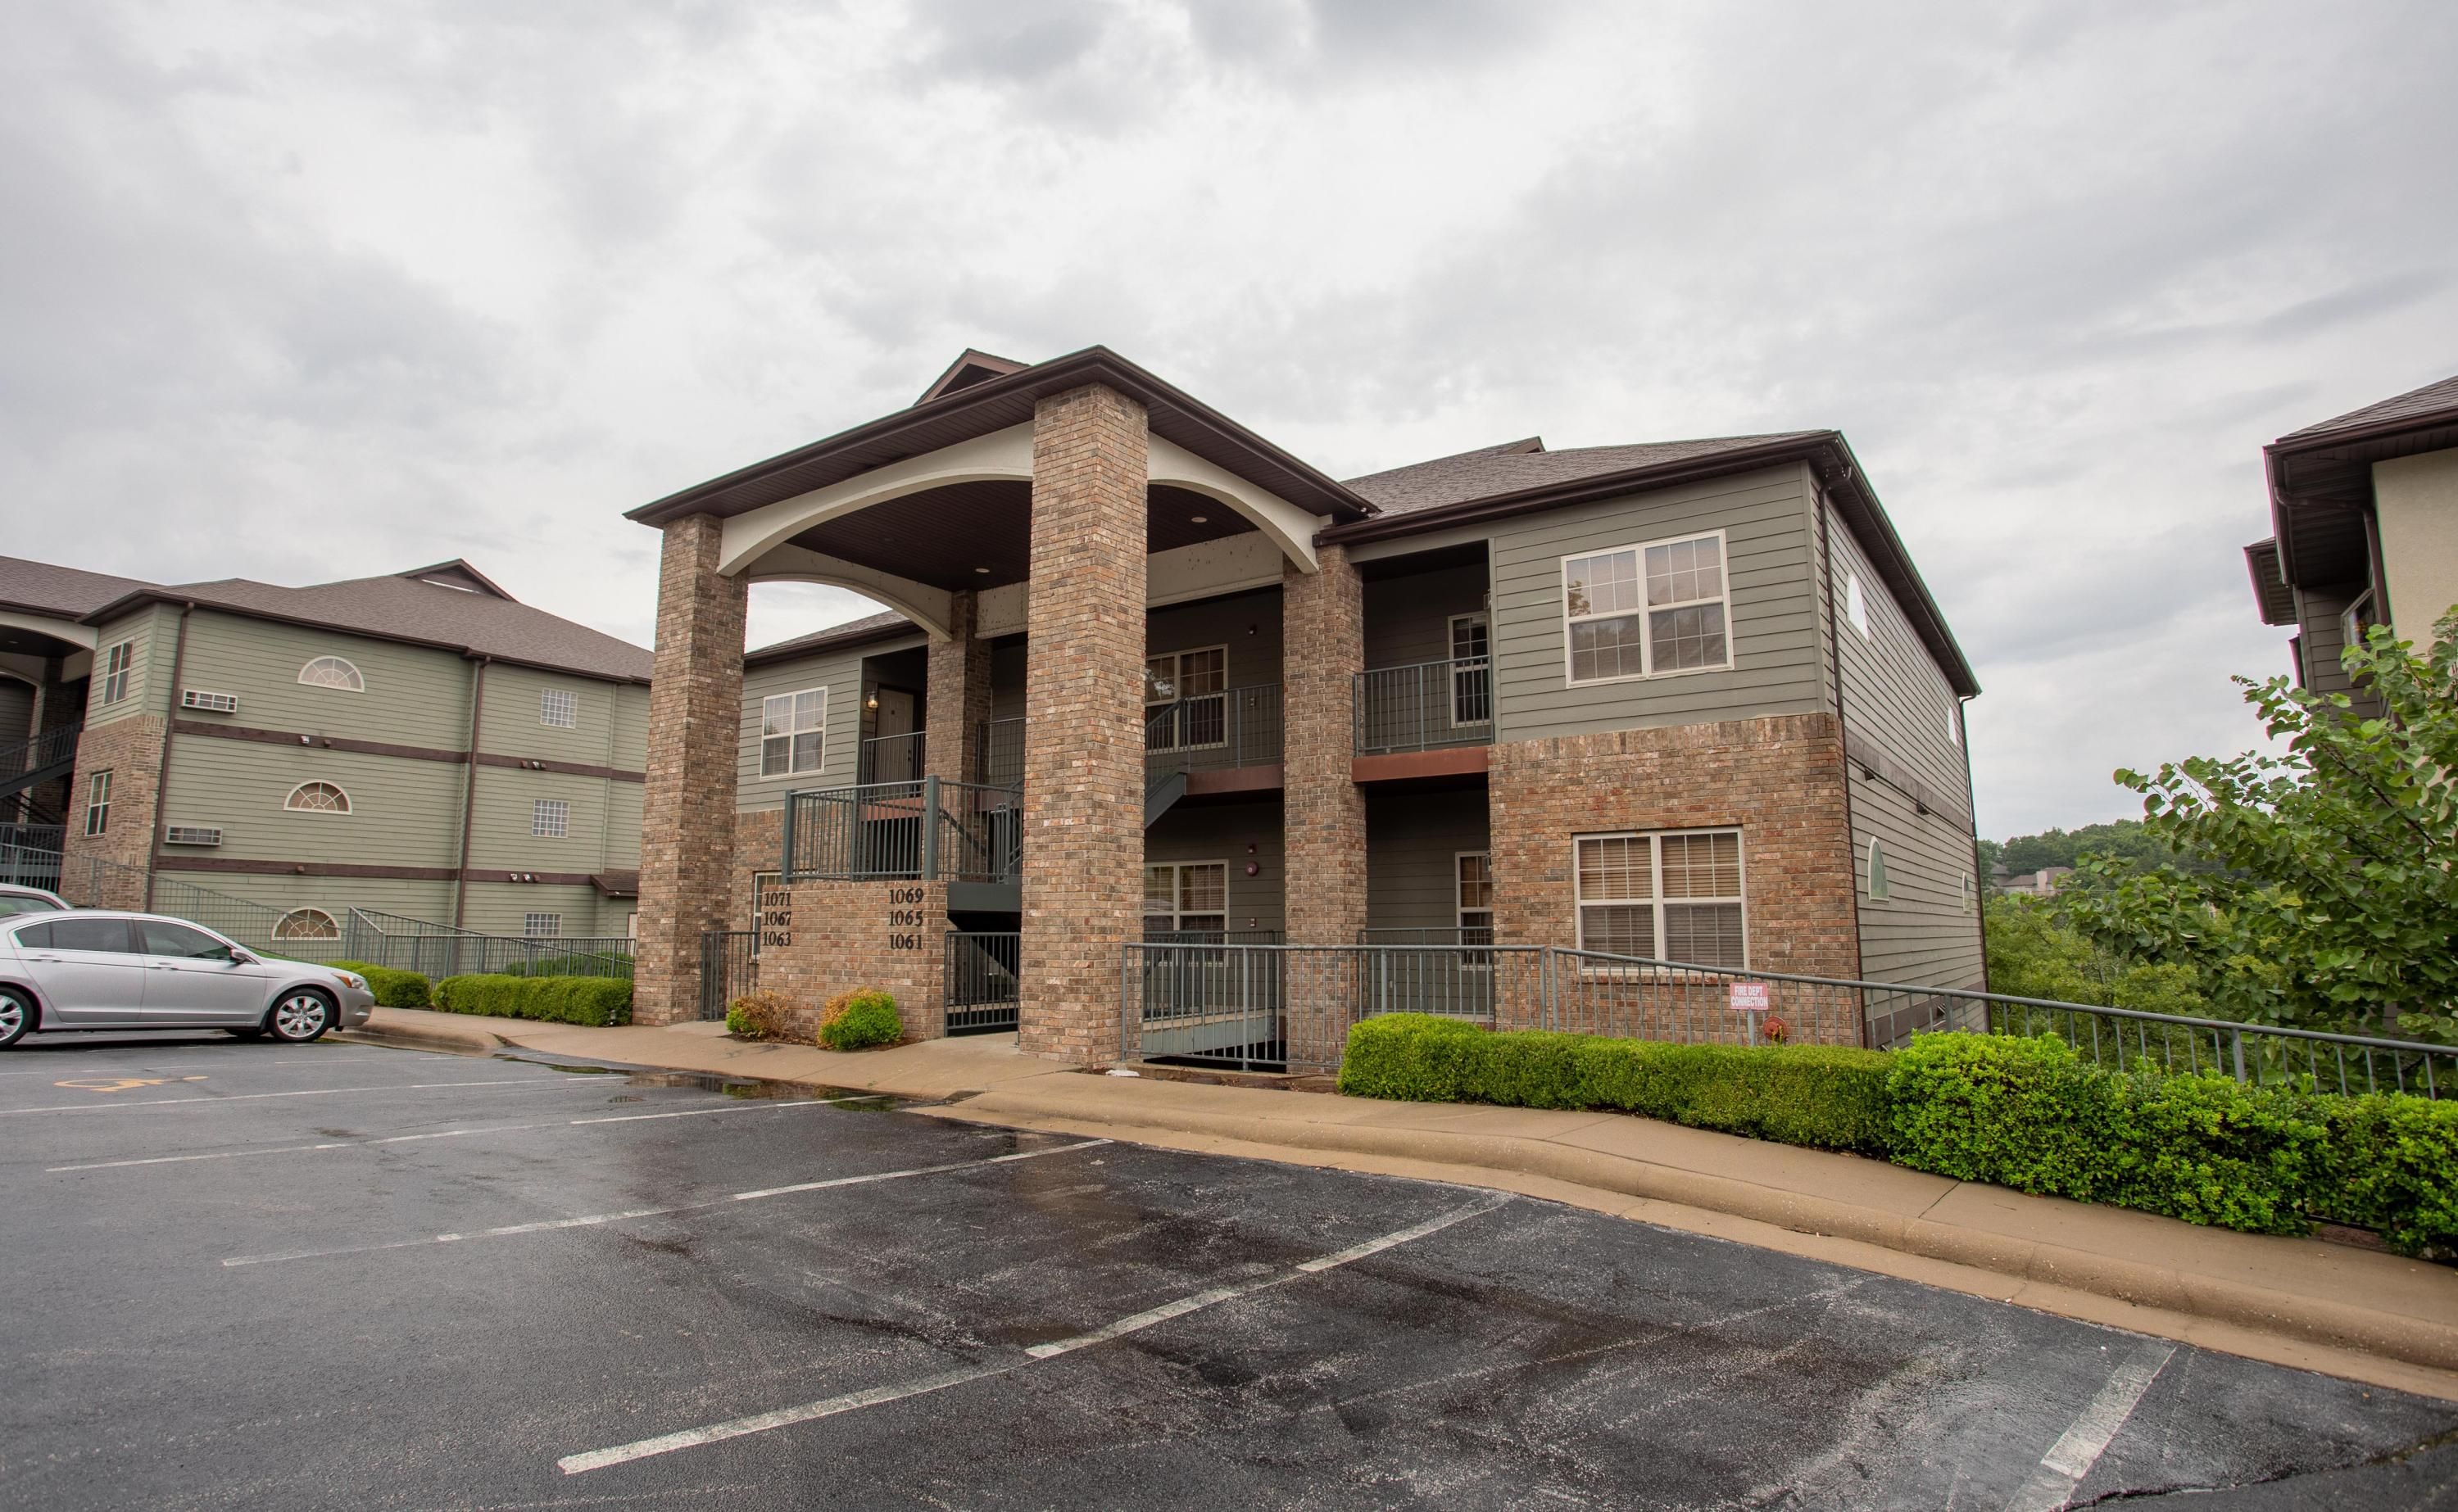 1061 Golf Drive #2 Branson West, MO 65737